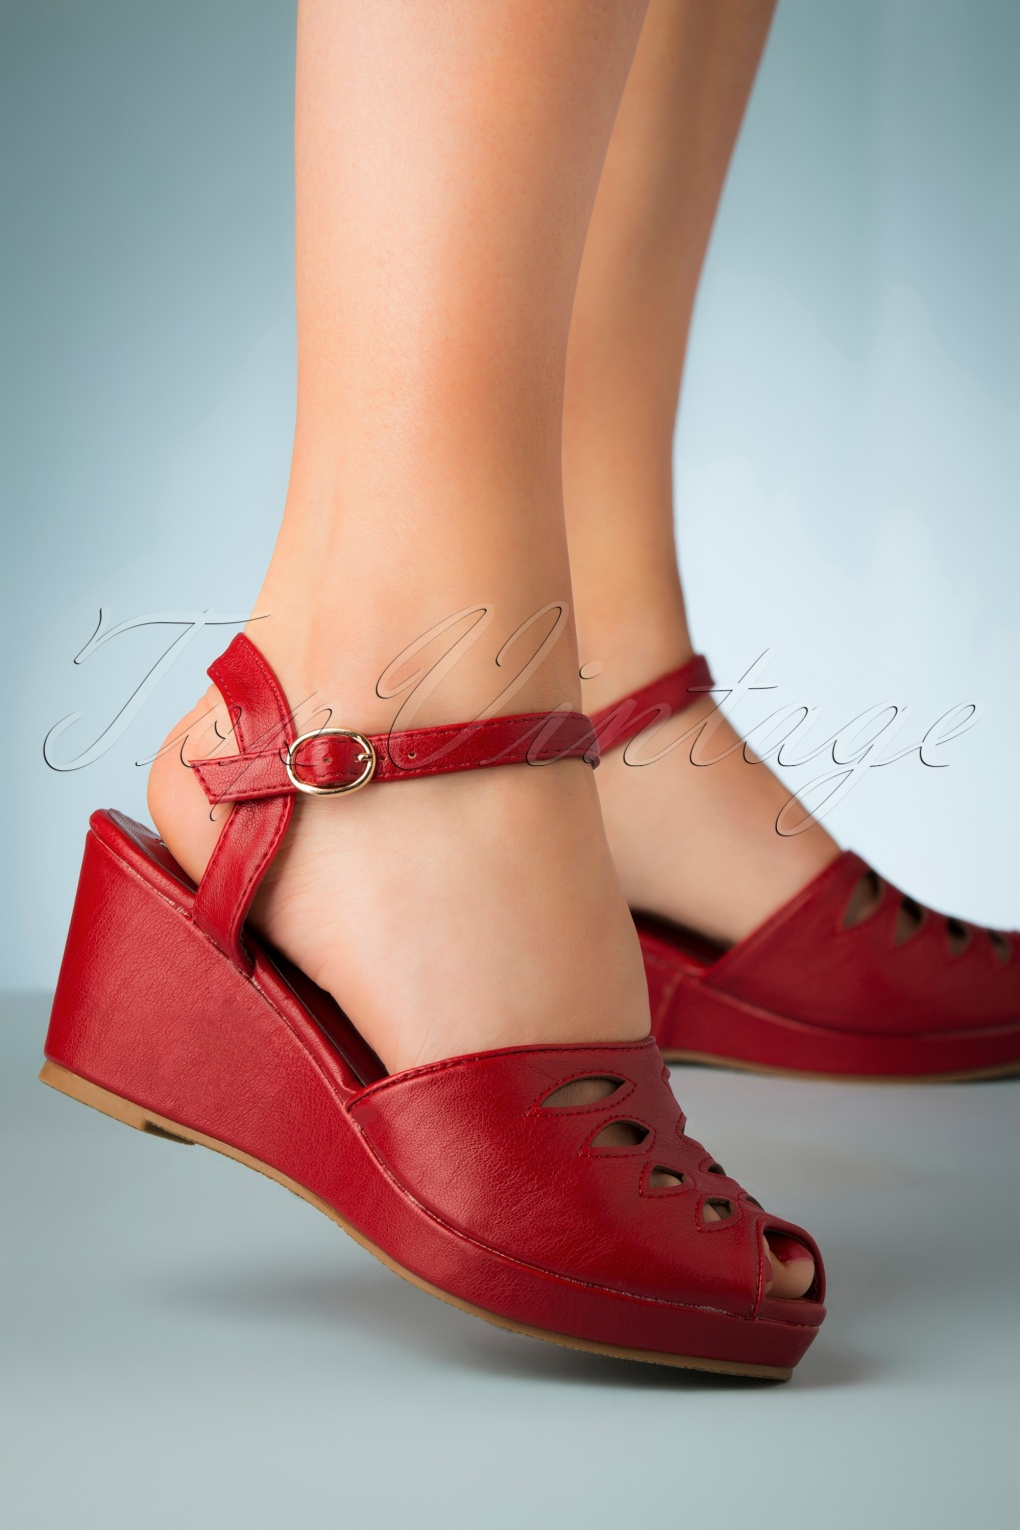 Pin Up Shoes- Heels, Pumps & Flats Lily Wedge Sandals in Red £38.92 AT vintagedancer.com